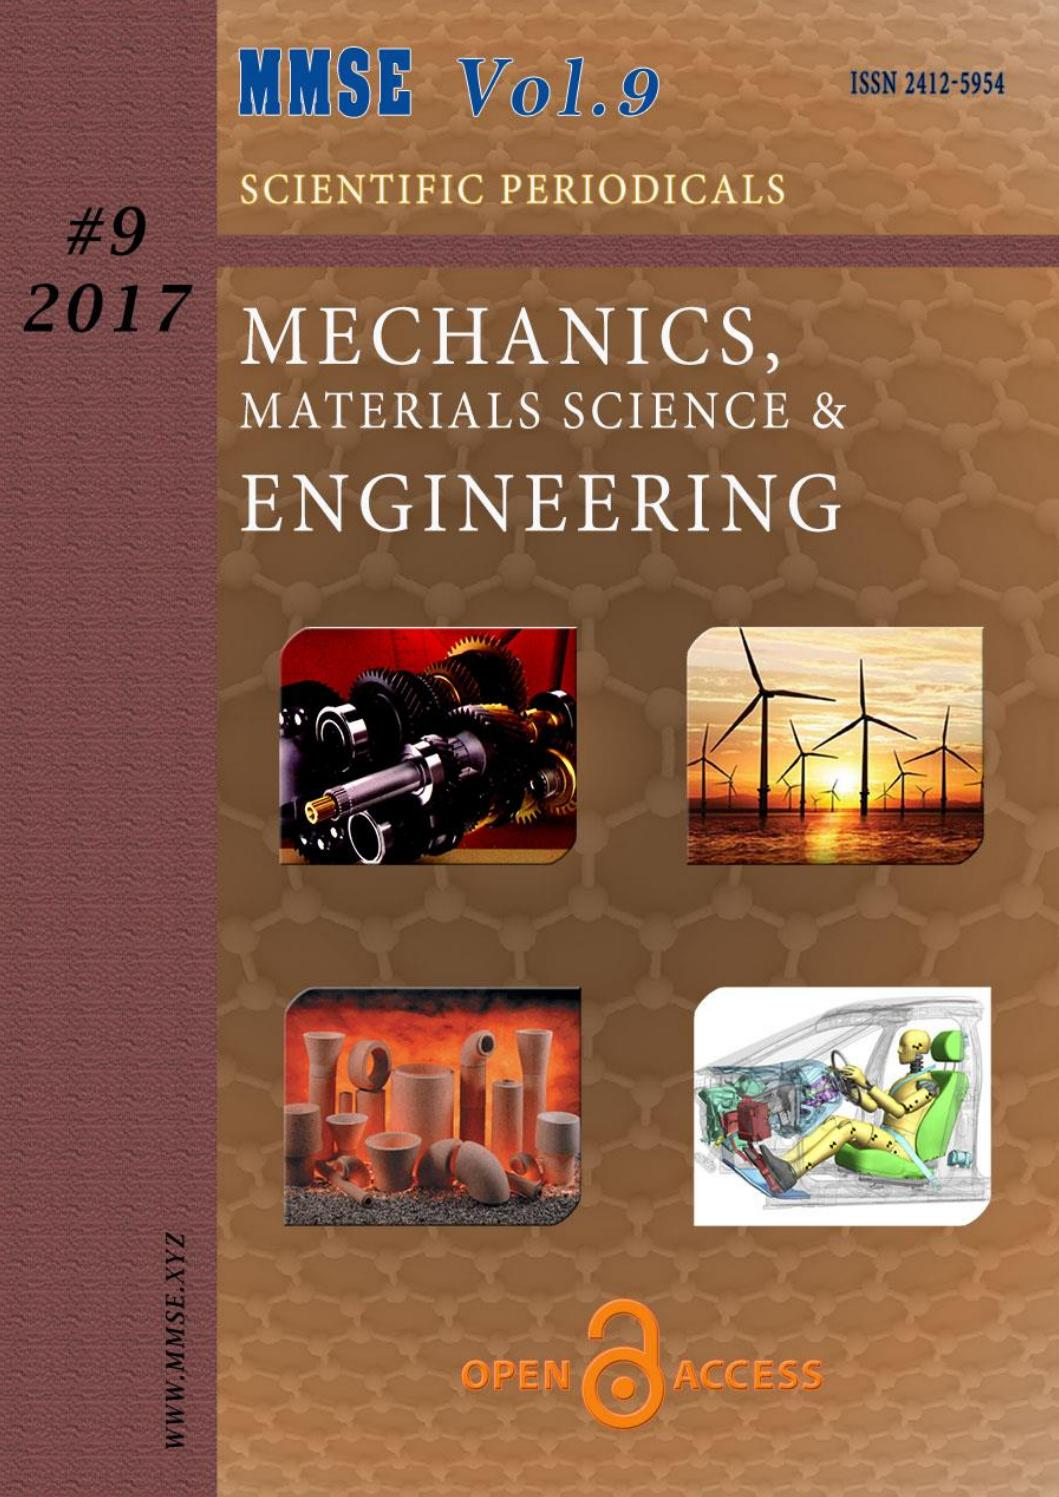 Mmse journal vol 9 iss 1 by MMSE Journal - issuu